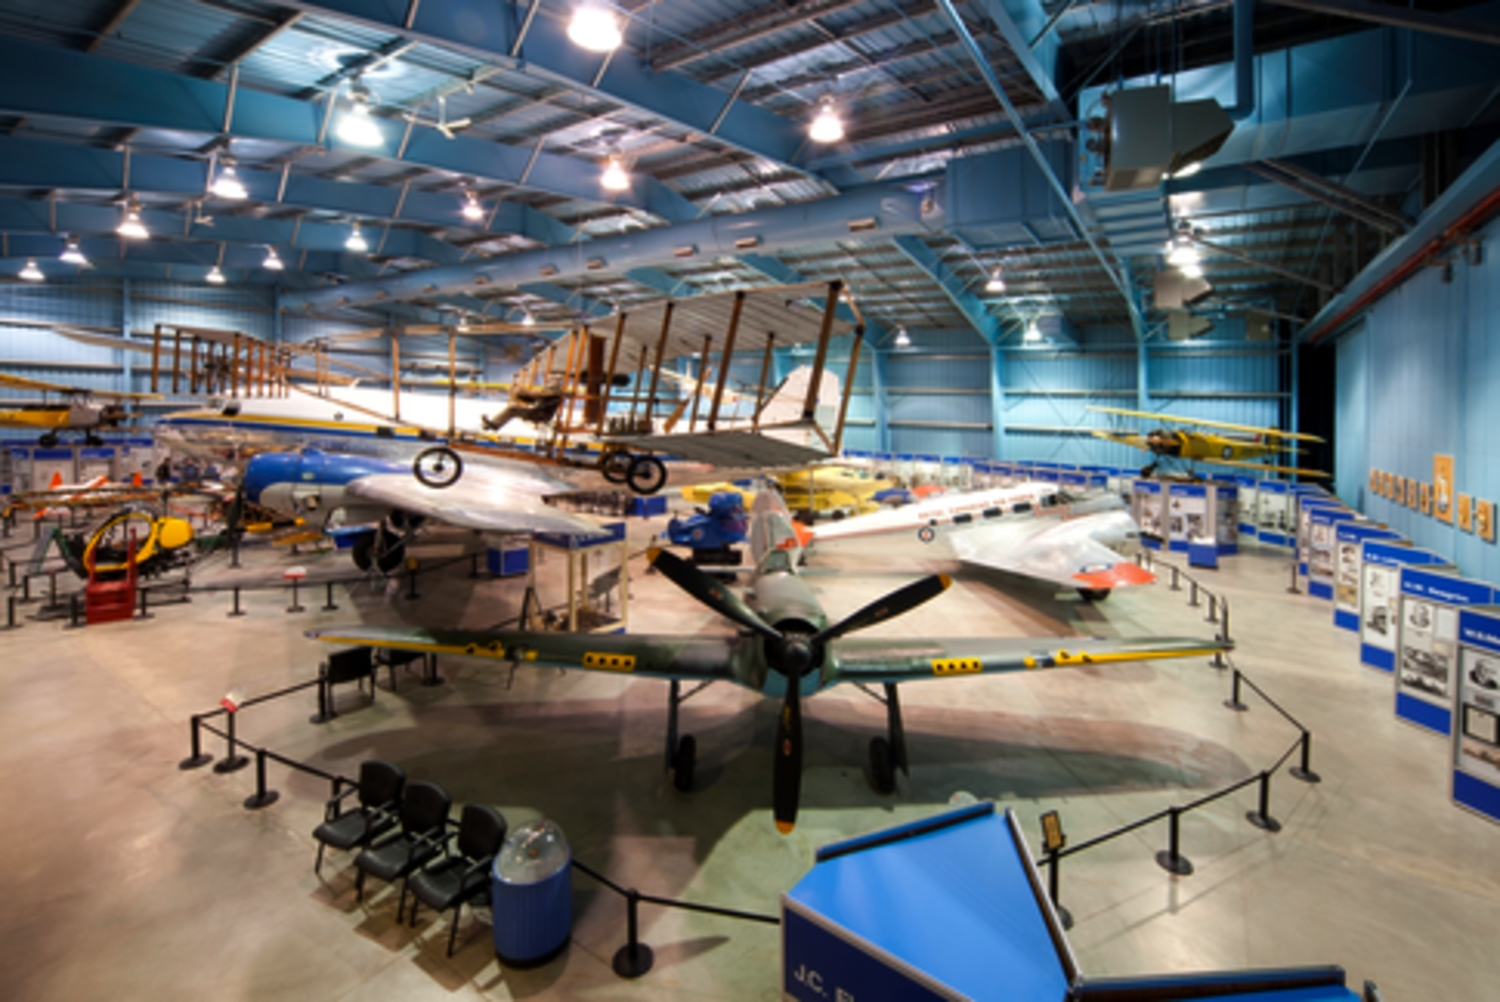 Aviation Display Hangar